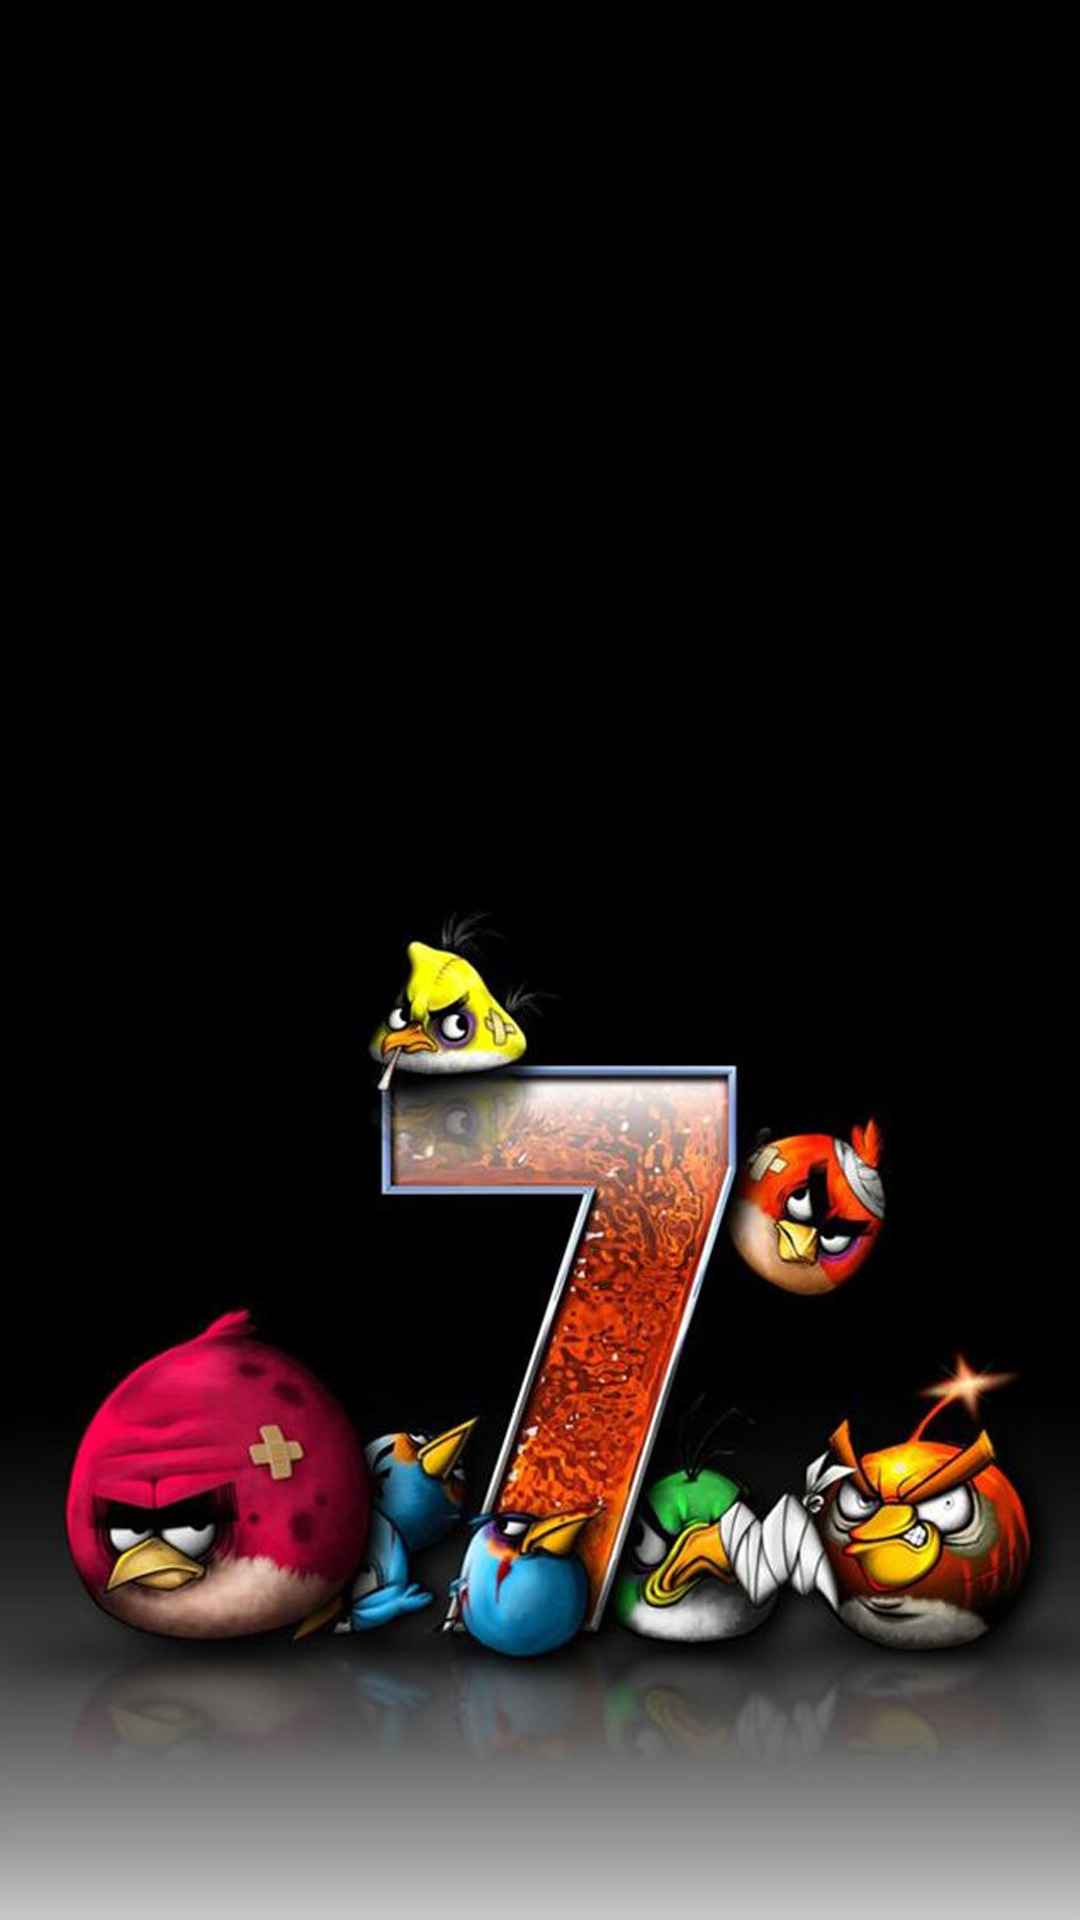 Angry Birds 7 Funny Wallpapers For Iphone